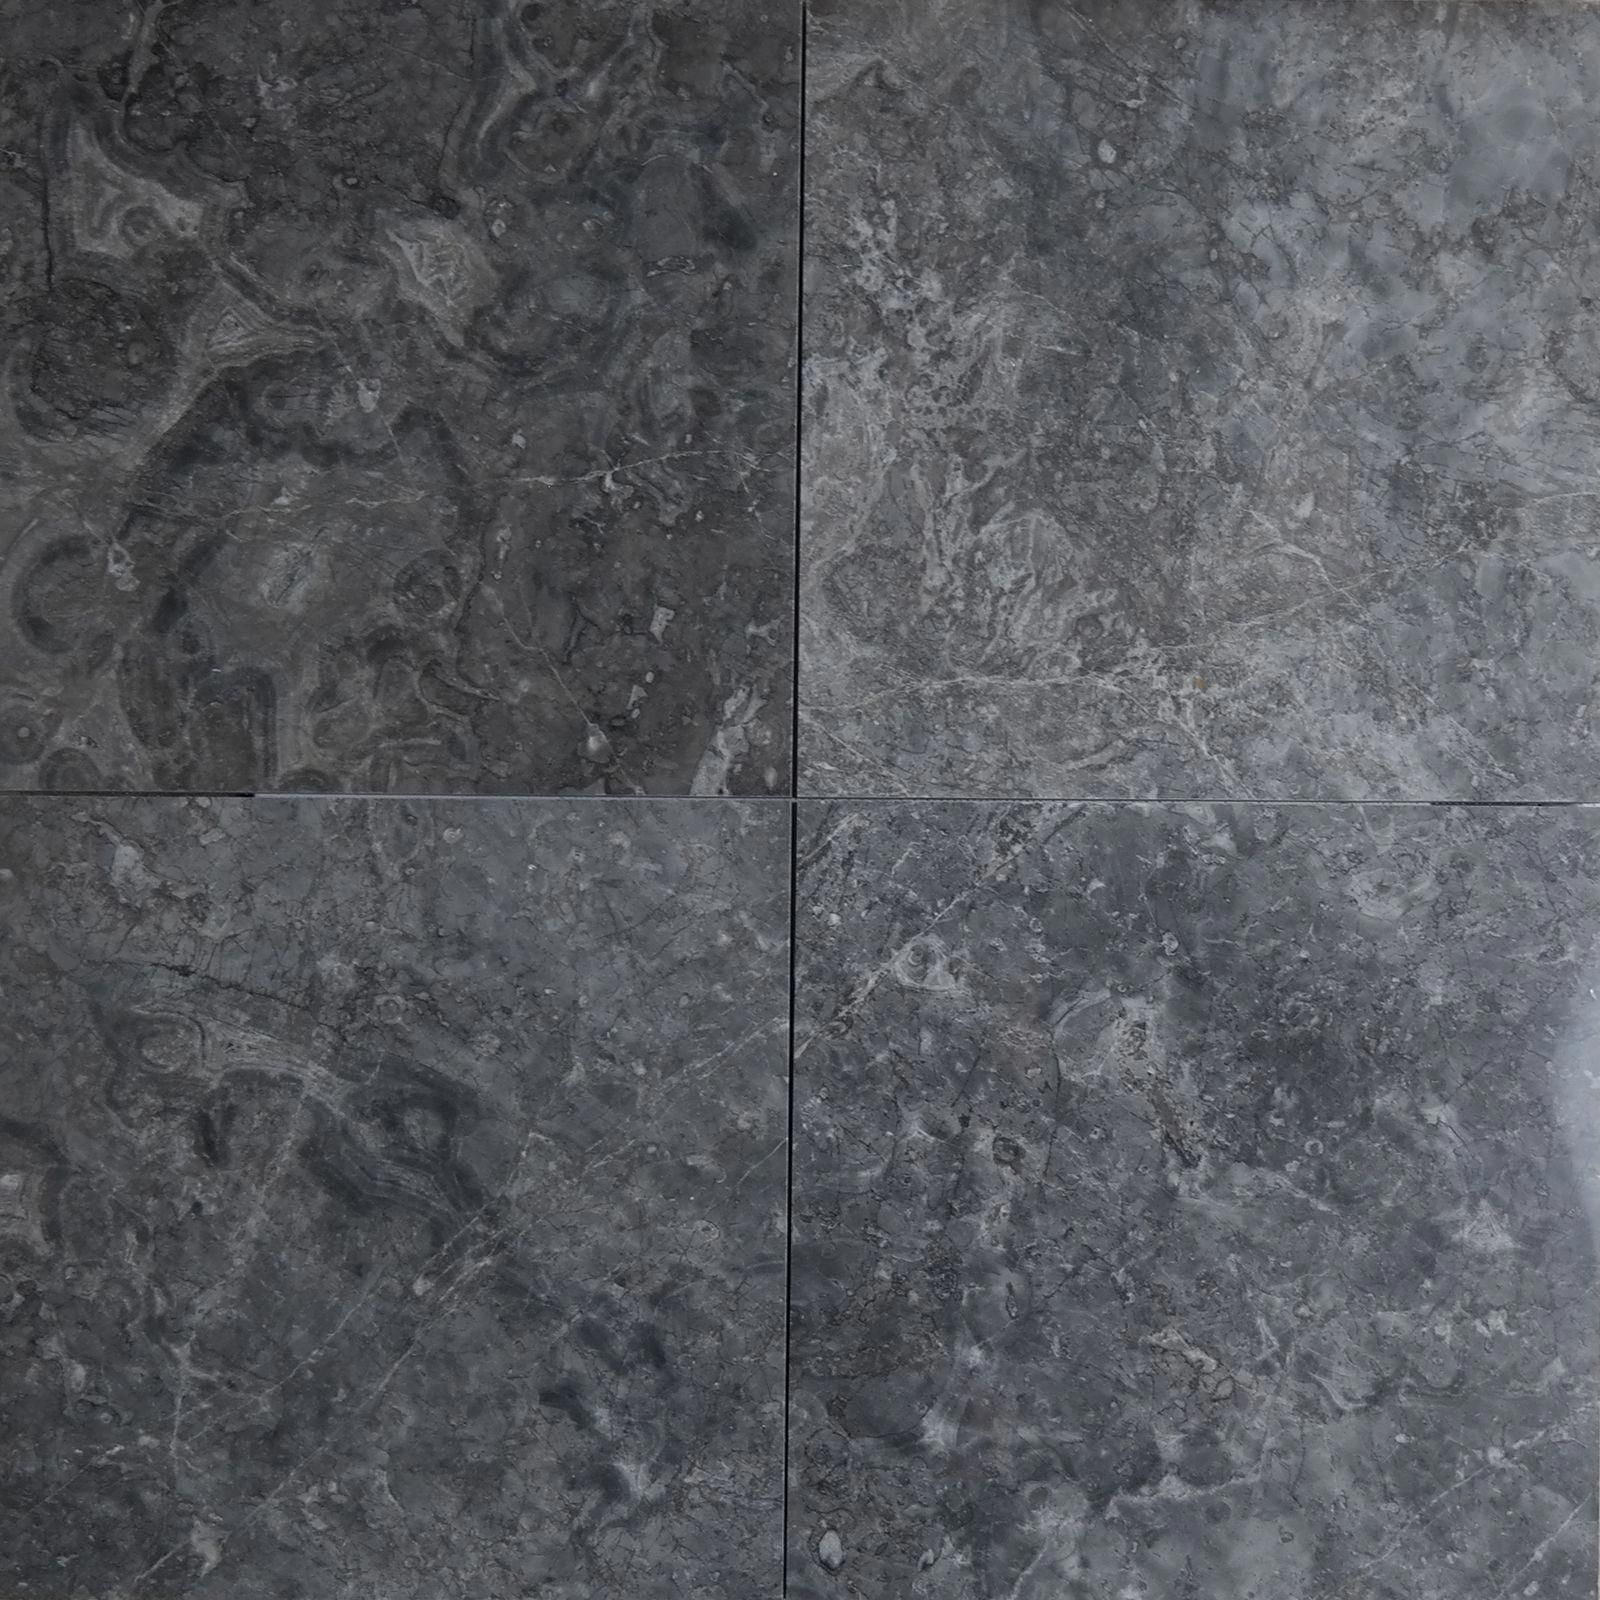 12 X 12 Tile Dark Grey Marble Polished Wall Floor Tile Kitchen Backsplash Bathroom Wall Floor Luxury Stone Ba Marble Polishing Grey Marble Floor Grey Flooring